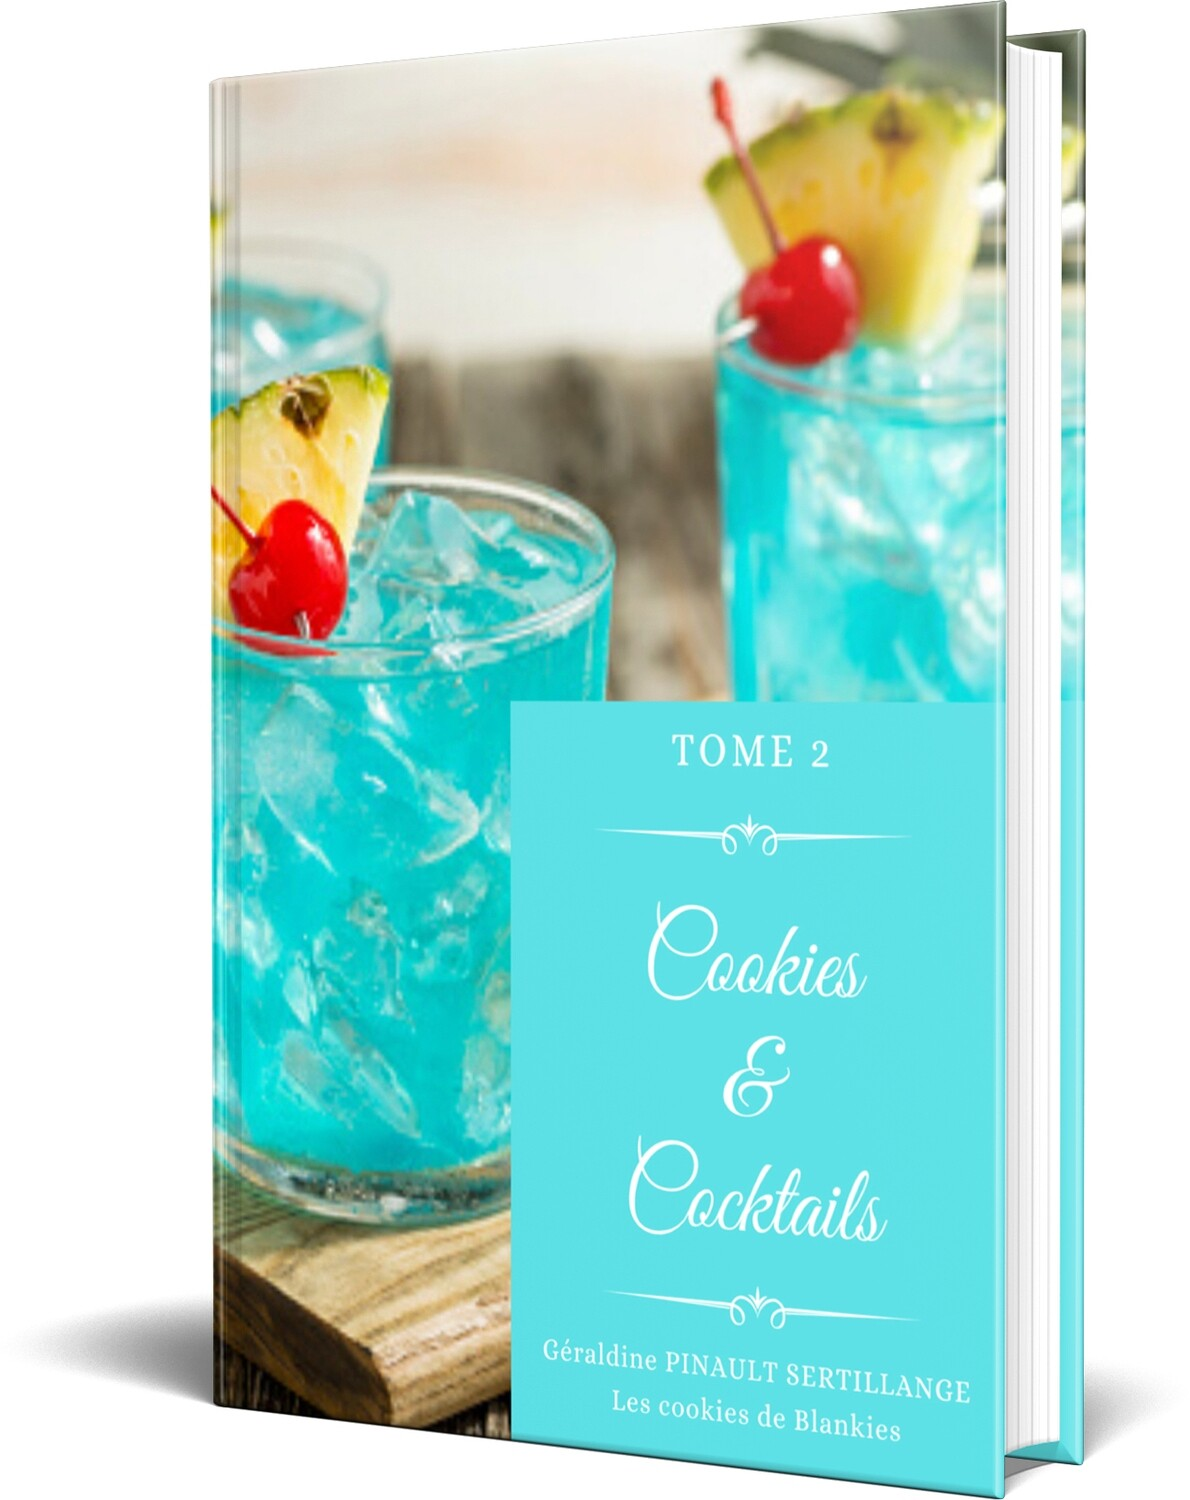 TOME 2 - Cookies & Cocktails